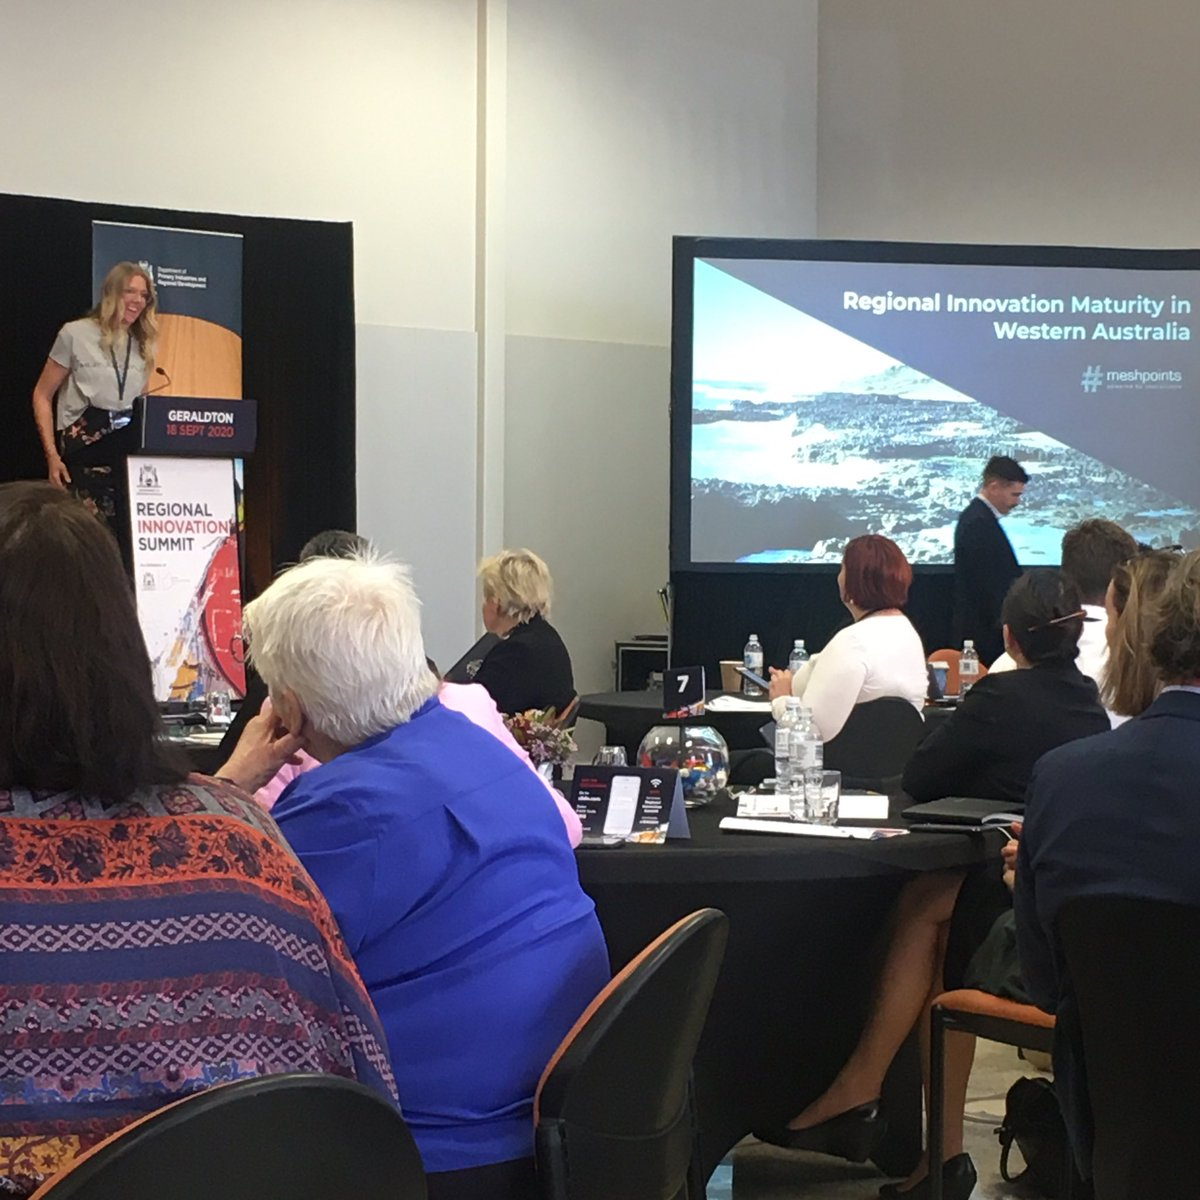 @Meshpoints lead @KatieVDB_MCO taking to the stage to talk #regional #innovation at the @DPIRDWA #RegionalInnovationSummit today, taking us through the 10 year history of innovation & diversification throughout #regionalWA & the role that networks play in collaboration 🙌 https://t.co/gJrfHU8ovM